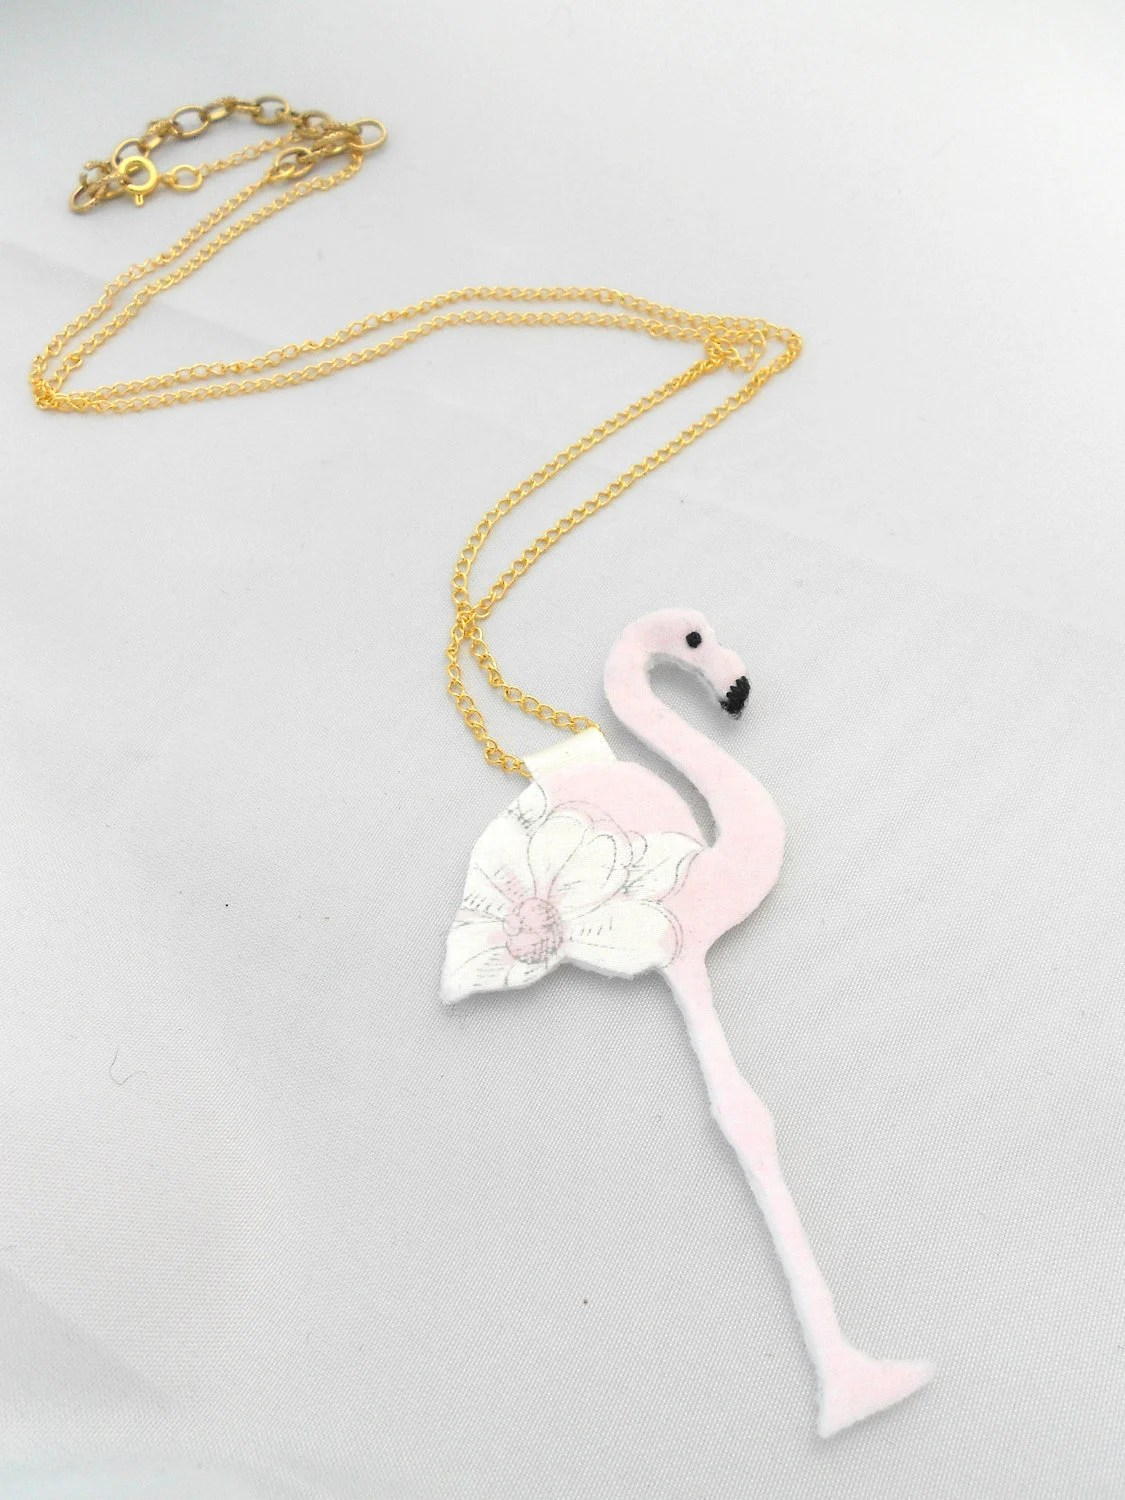 Flamingo Necklace Felt Jewellery Long Chain